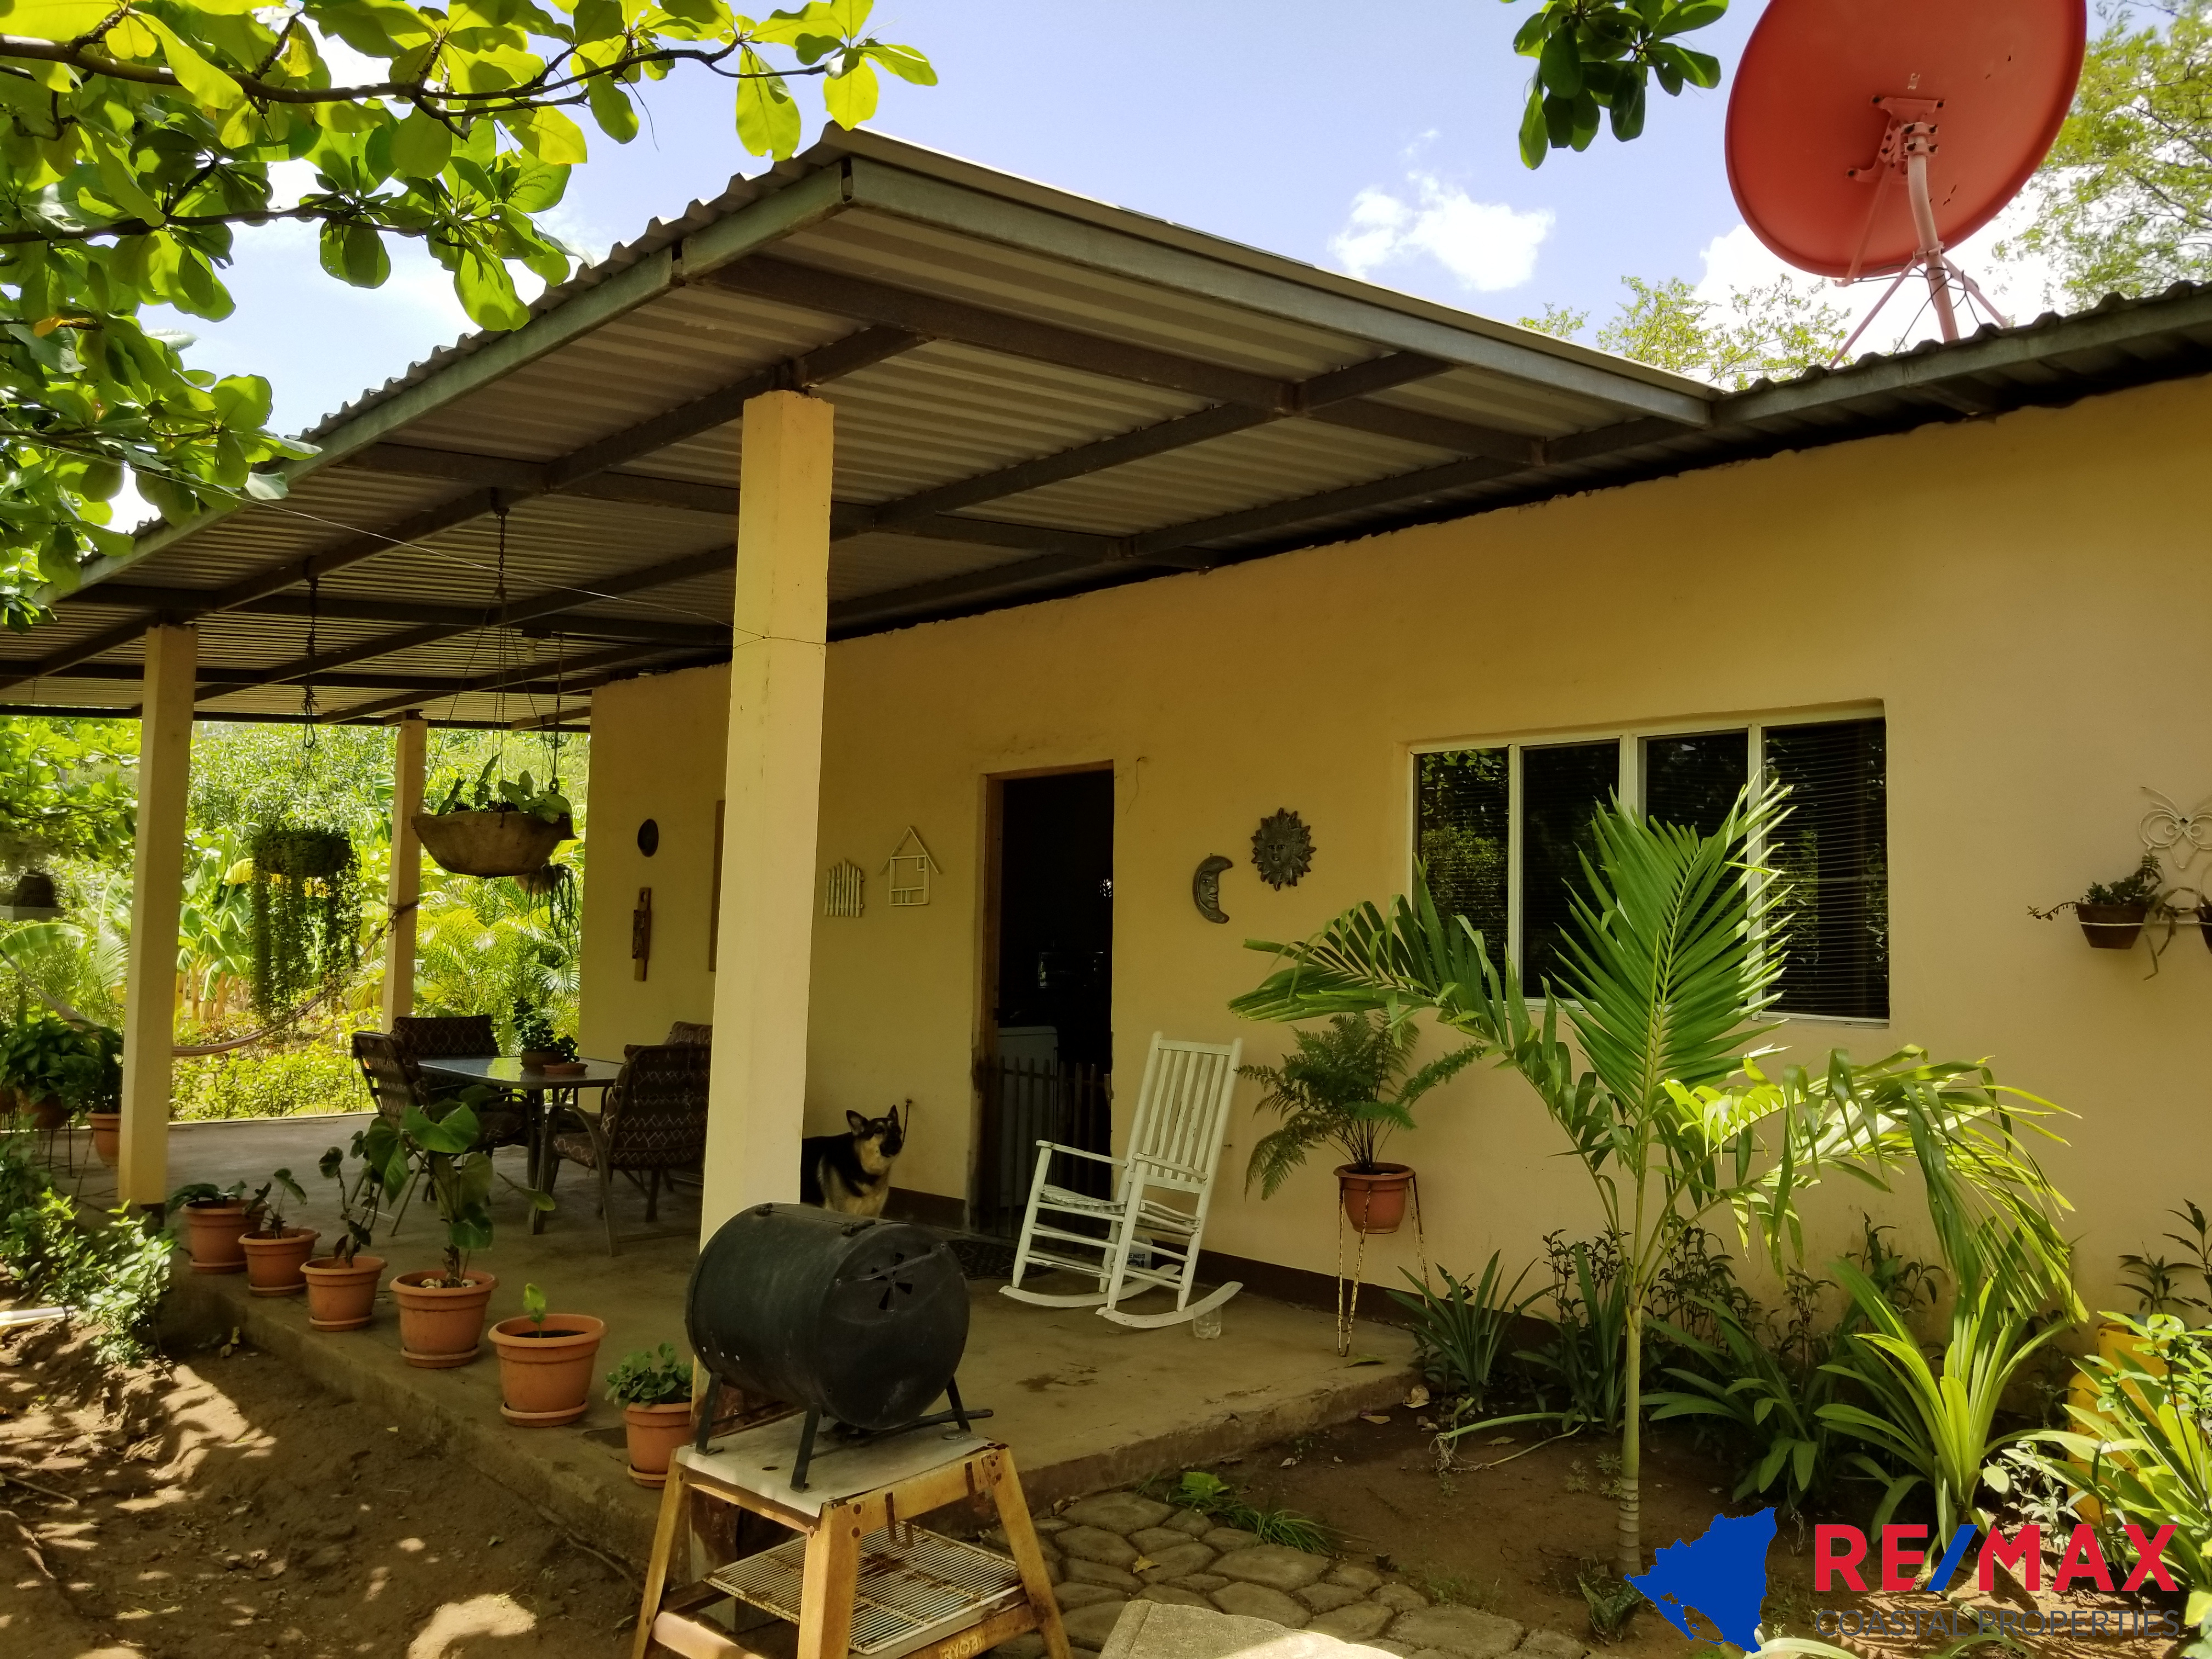 https://property-nicaragua.com/pedrodev/wp-content/uploads/2021/07/In-touch-with-nature-5.jpg